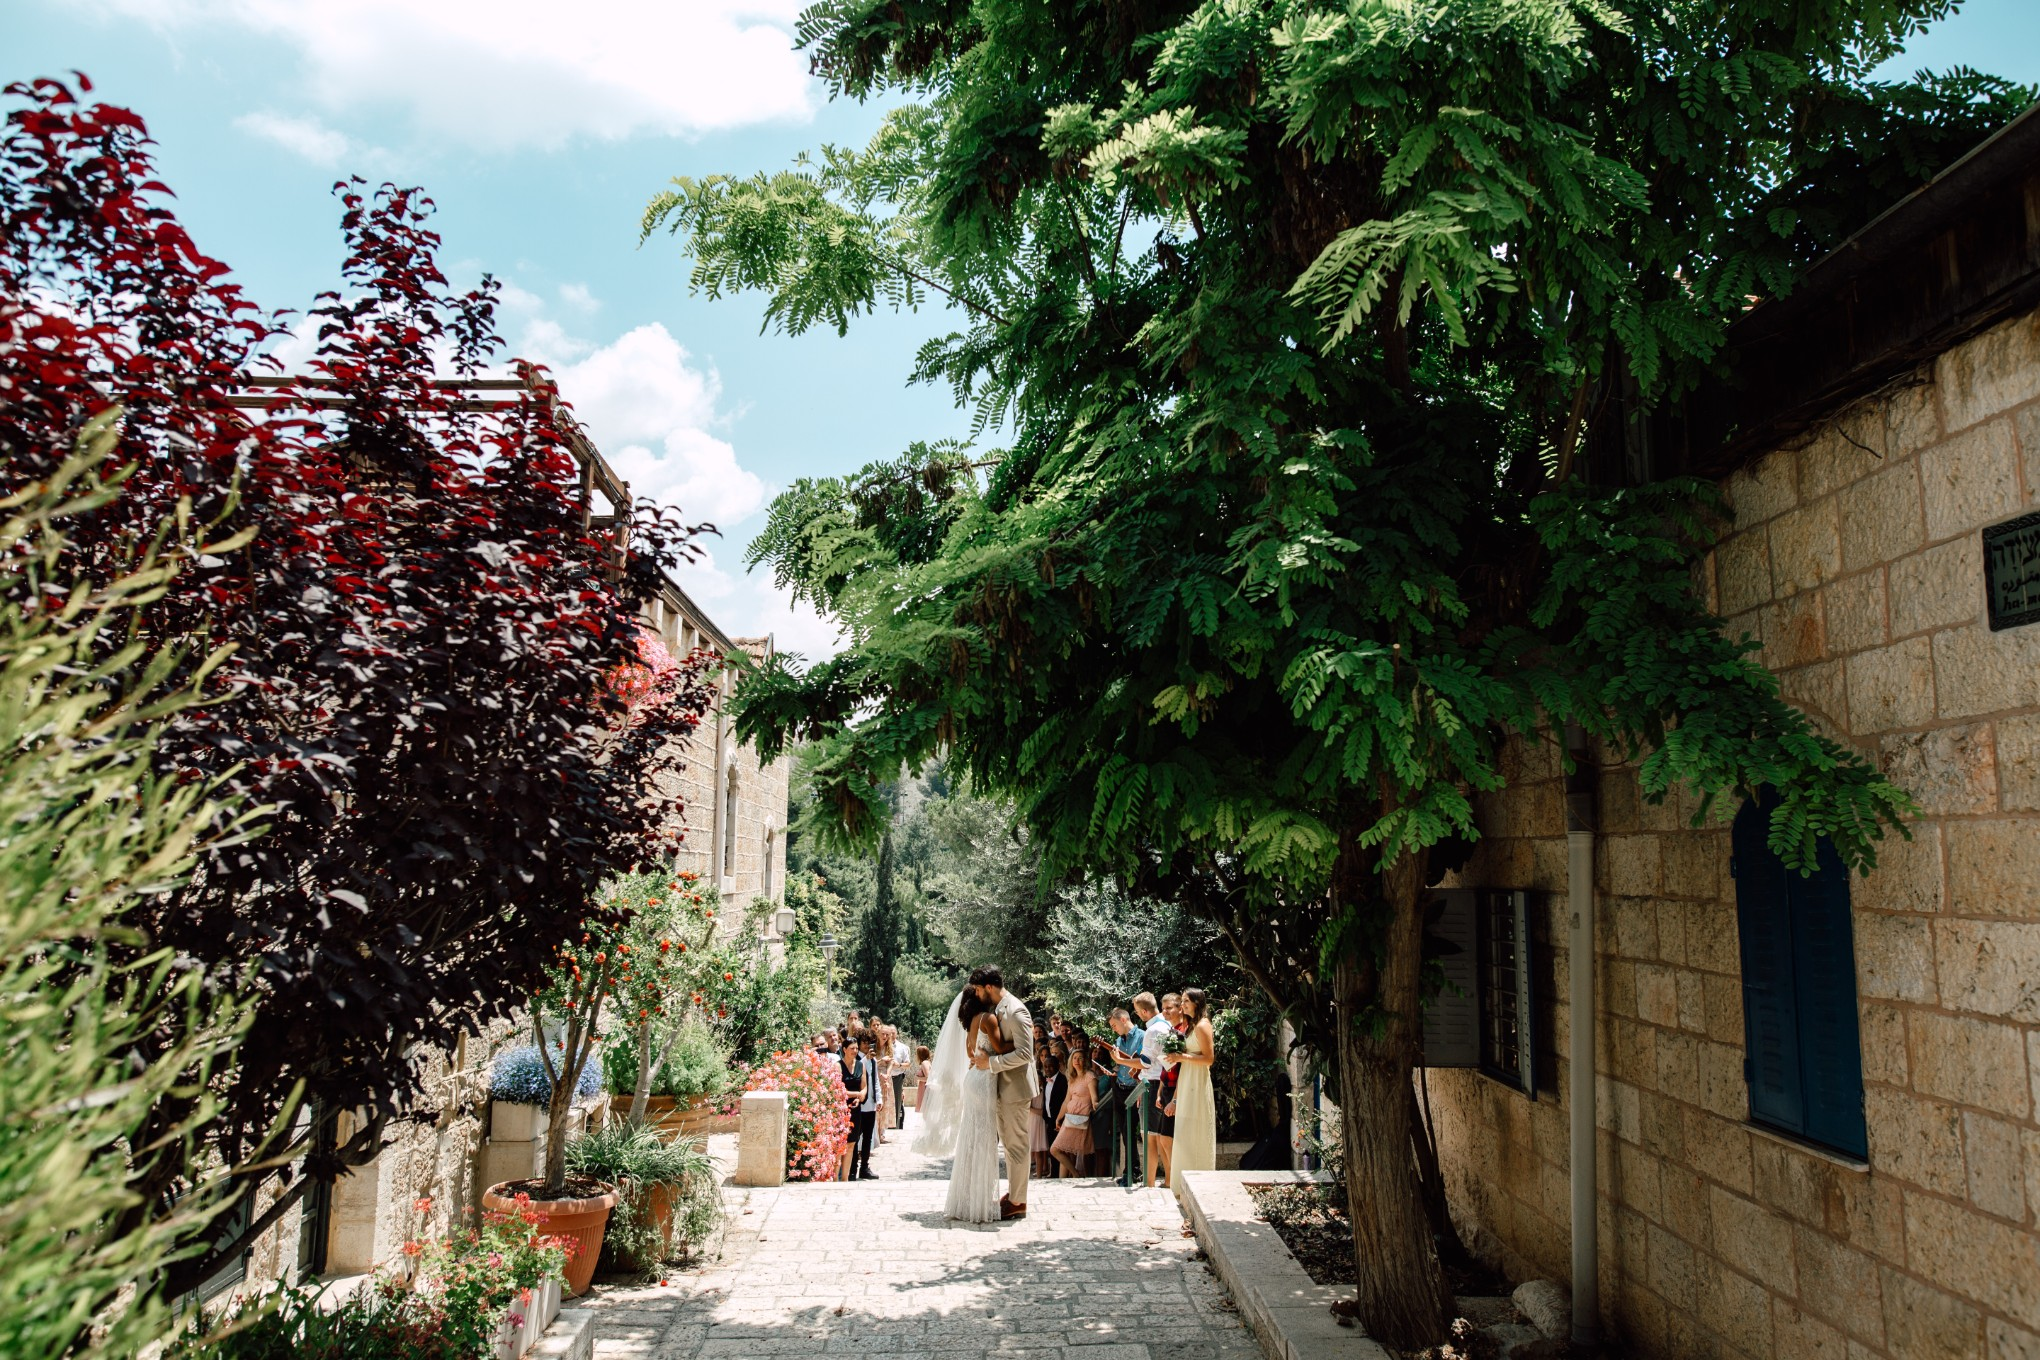 Jerusalem-Pia-Anna-Christian-Wedding-Photography-AD-T-55.jpg